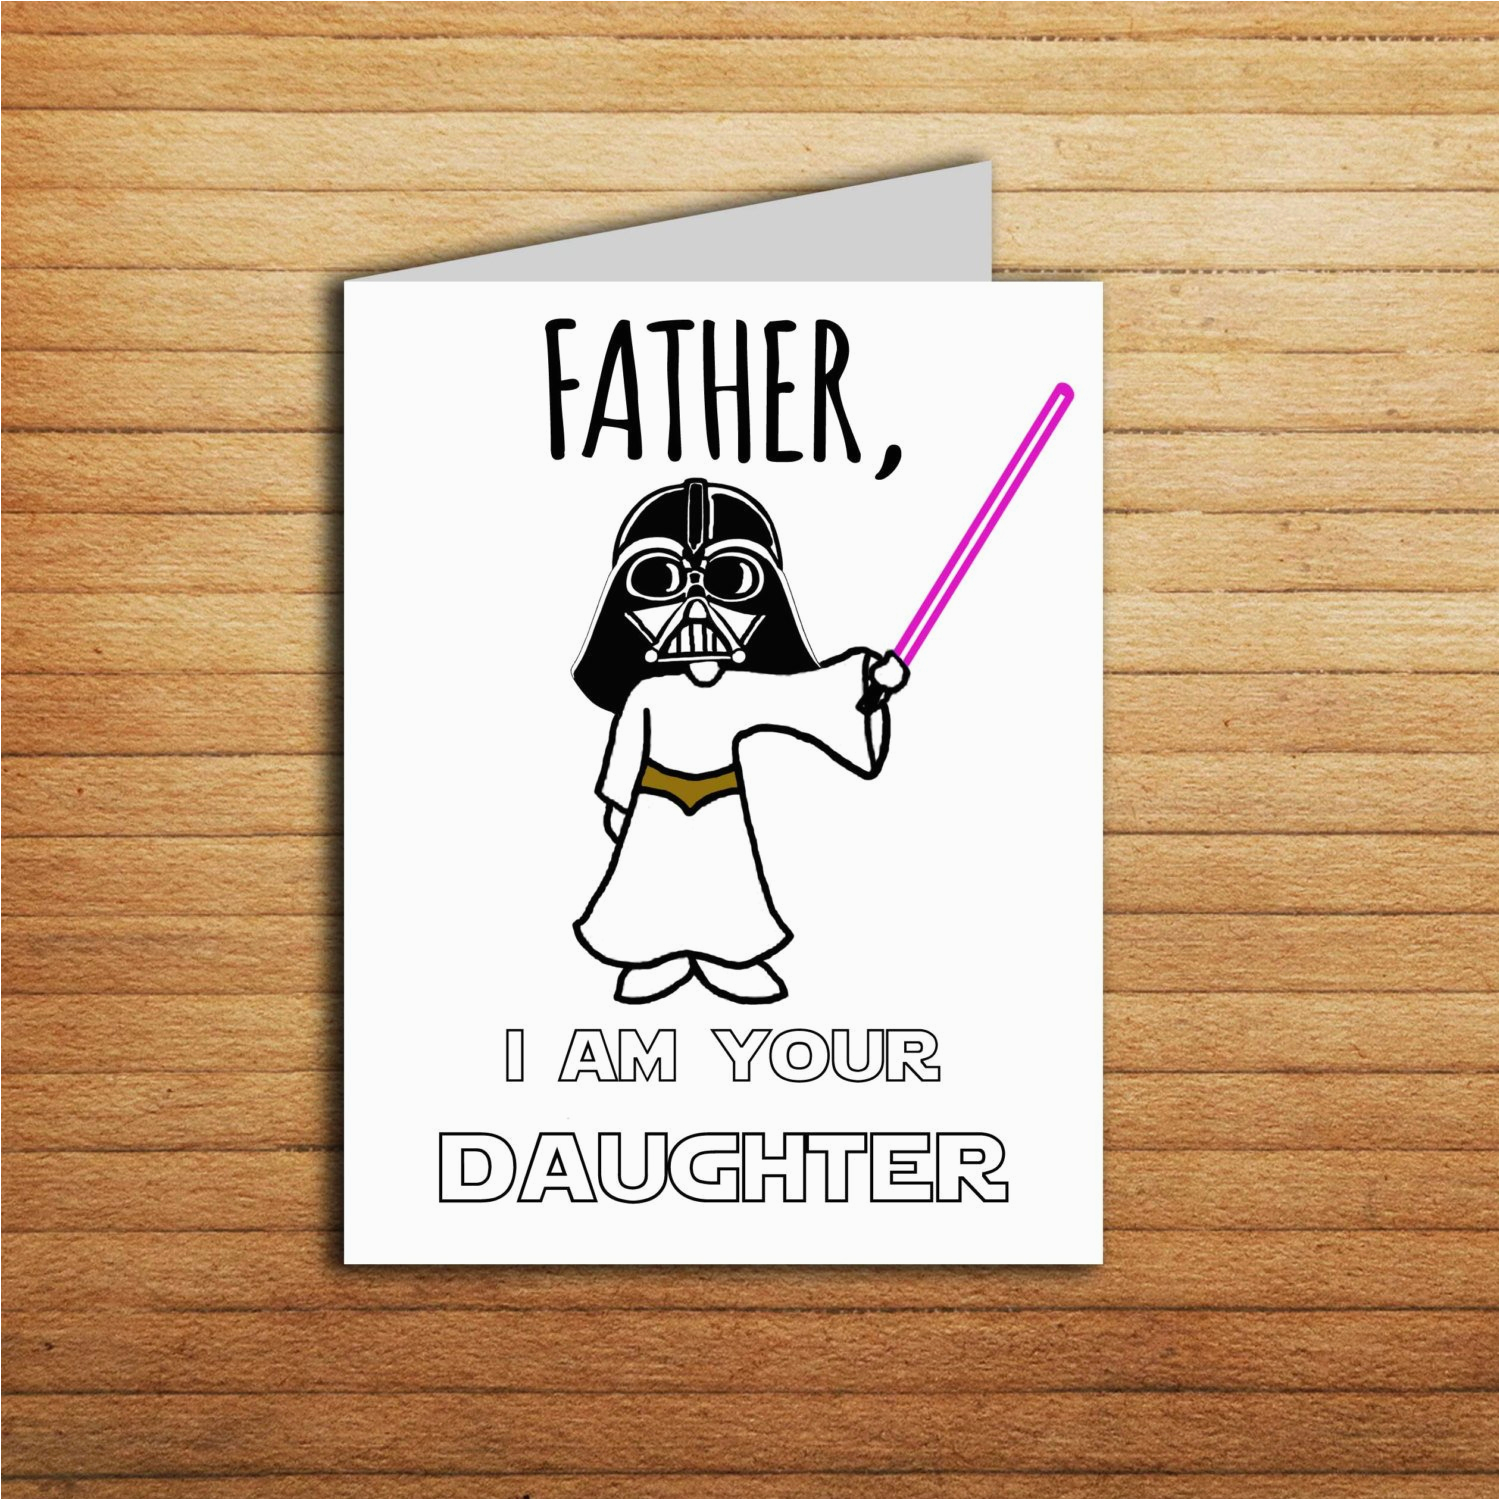 Funny Birthday Cards For Dad From Daughter Star Wars Christmas Card Gift